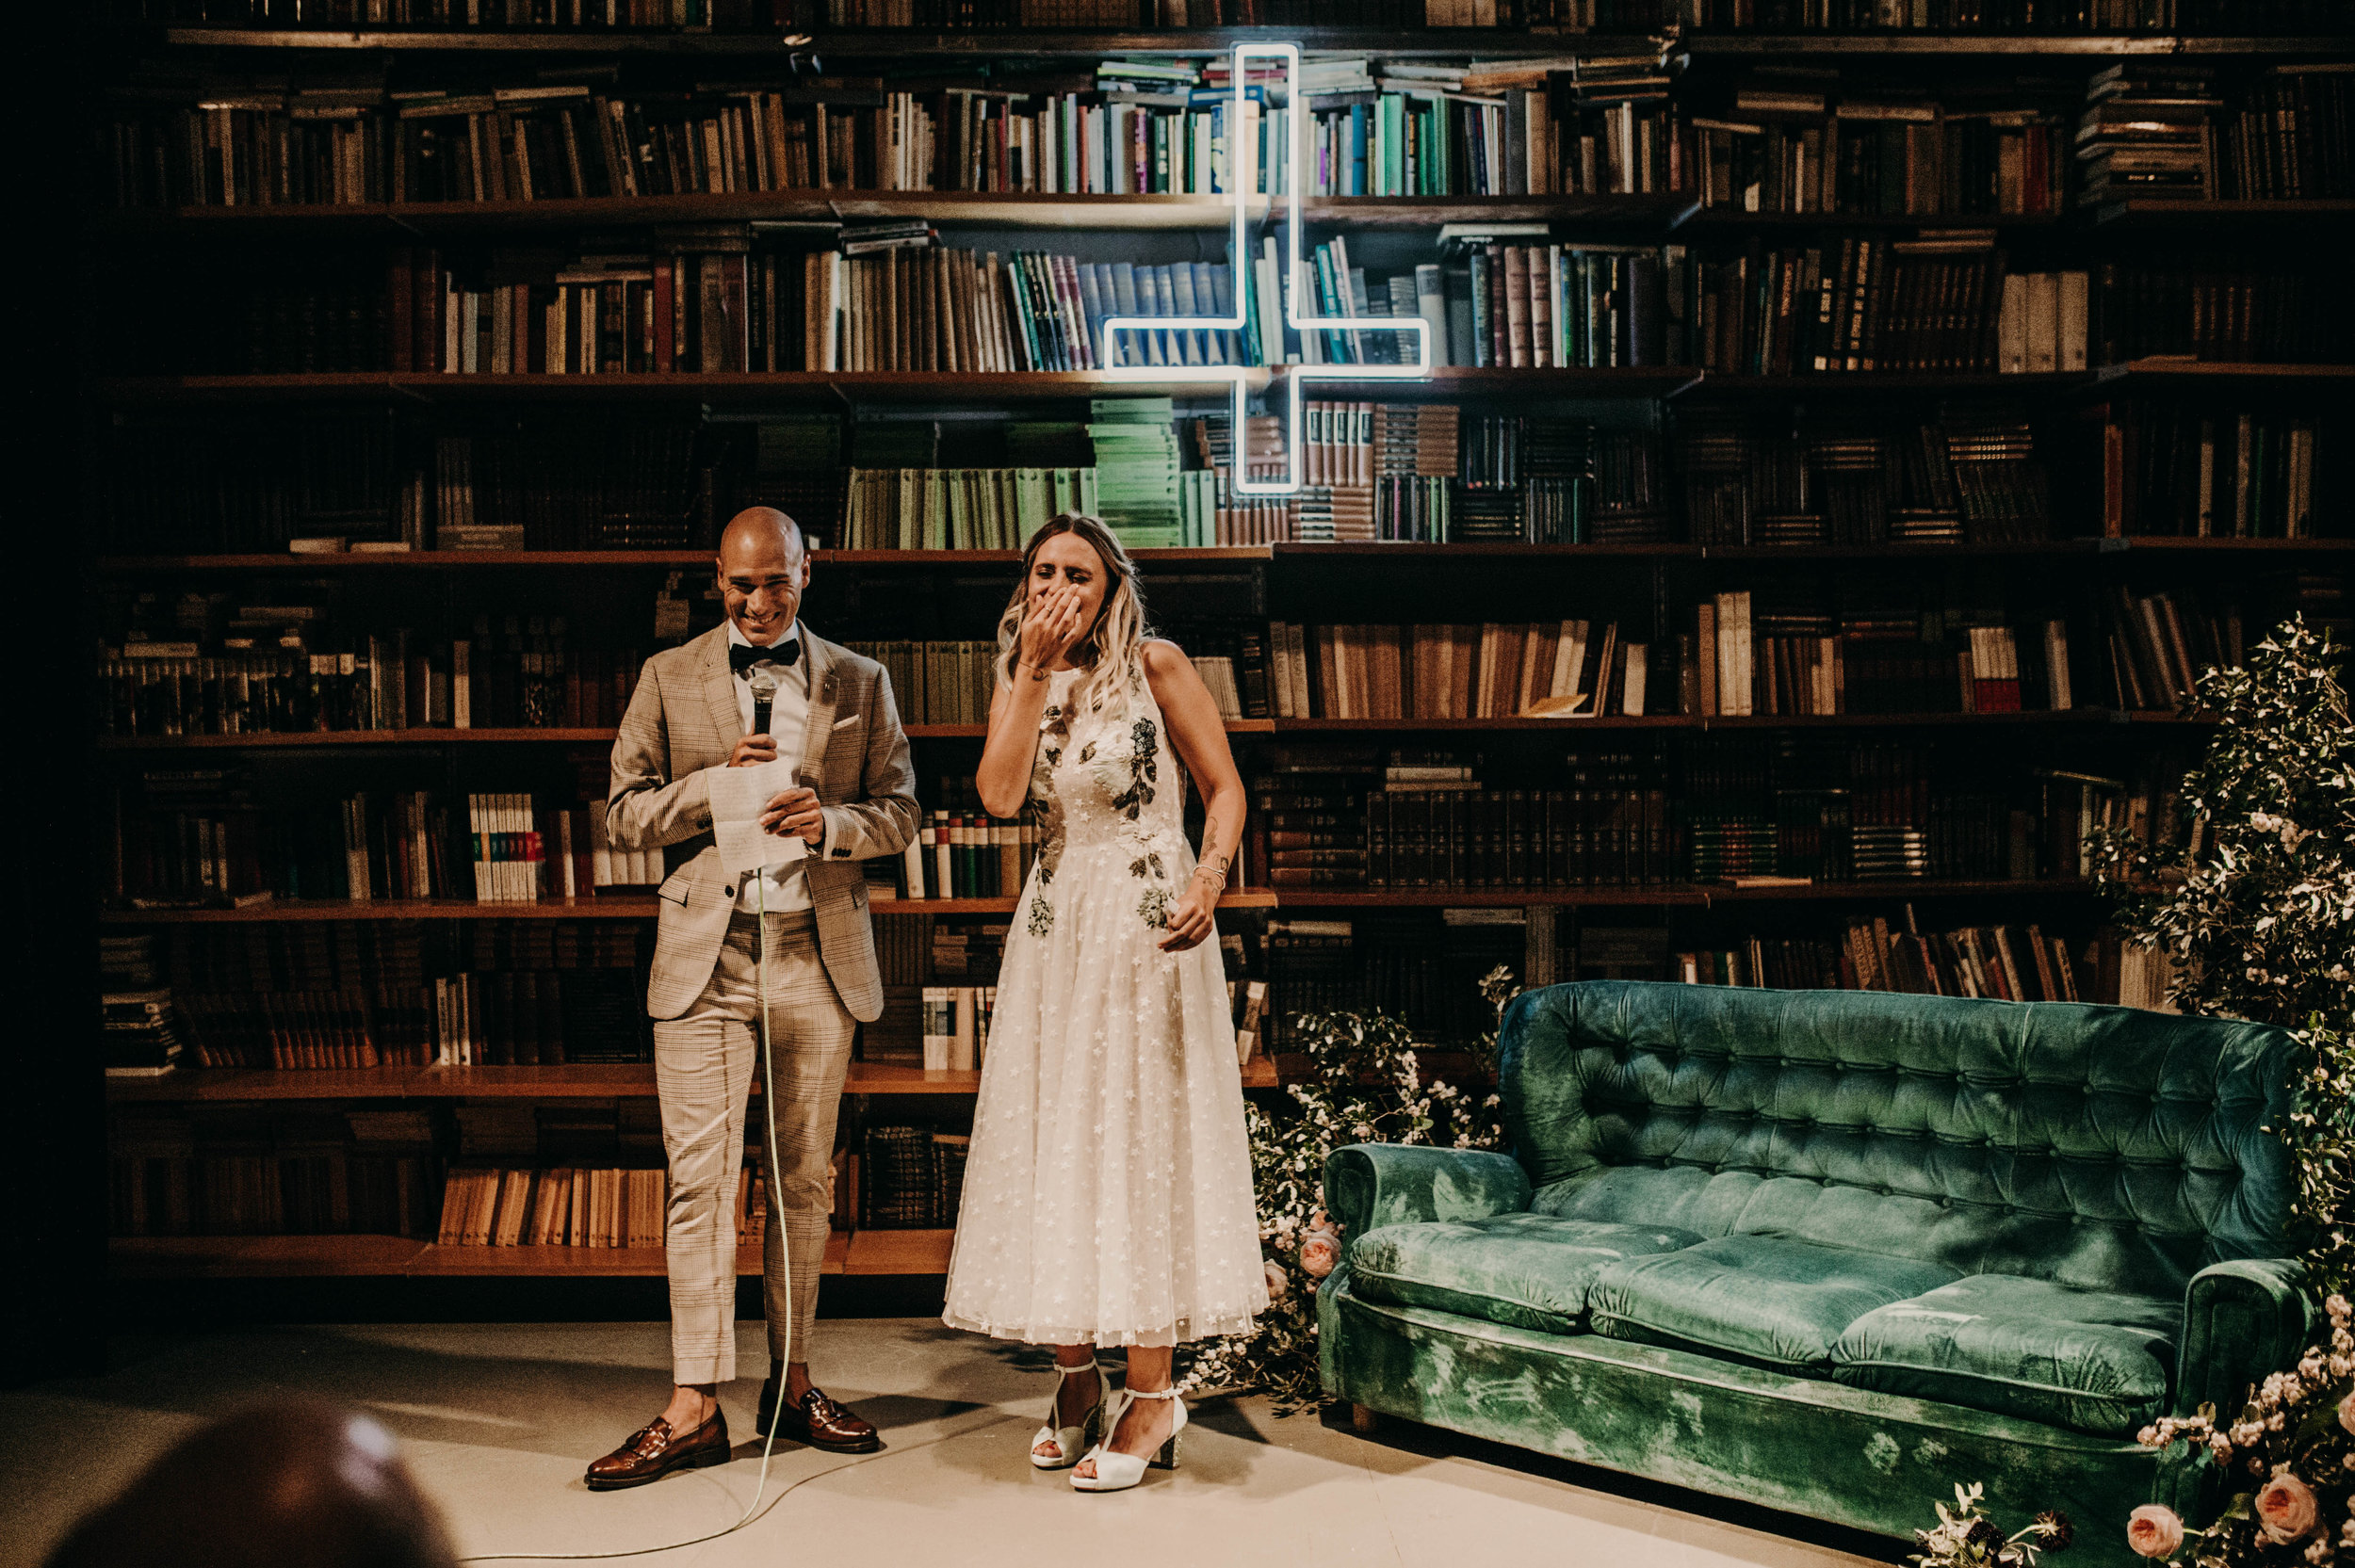 thenortherngirlphotography_bodasindustriales_bodasdiferentes_weddingphotographer_spanishphotographer_spanisgweddingphotographer_happyendings_mercantic_elsiglomercantic_antichrist_love_neon_weddingtattoo_CYNTHIAMANOLO-390.jpg